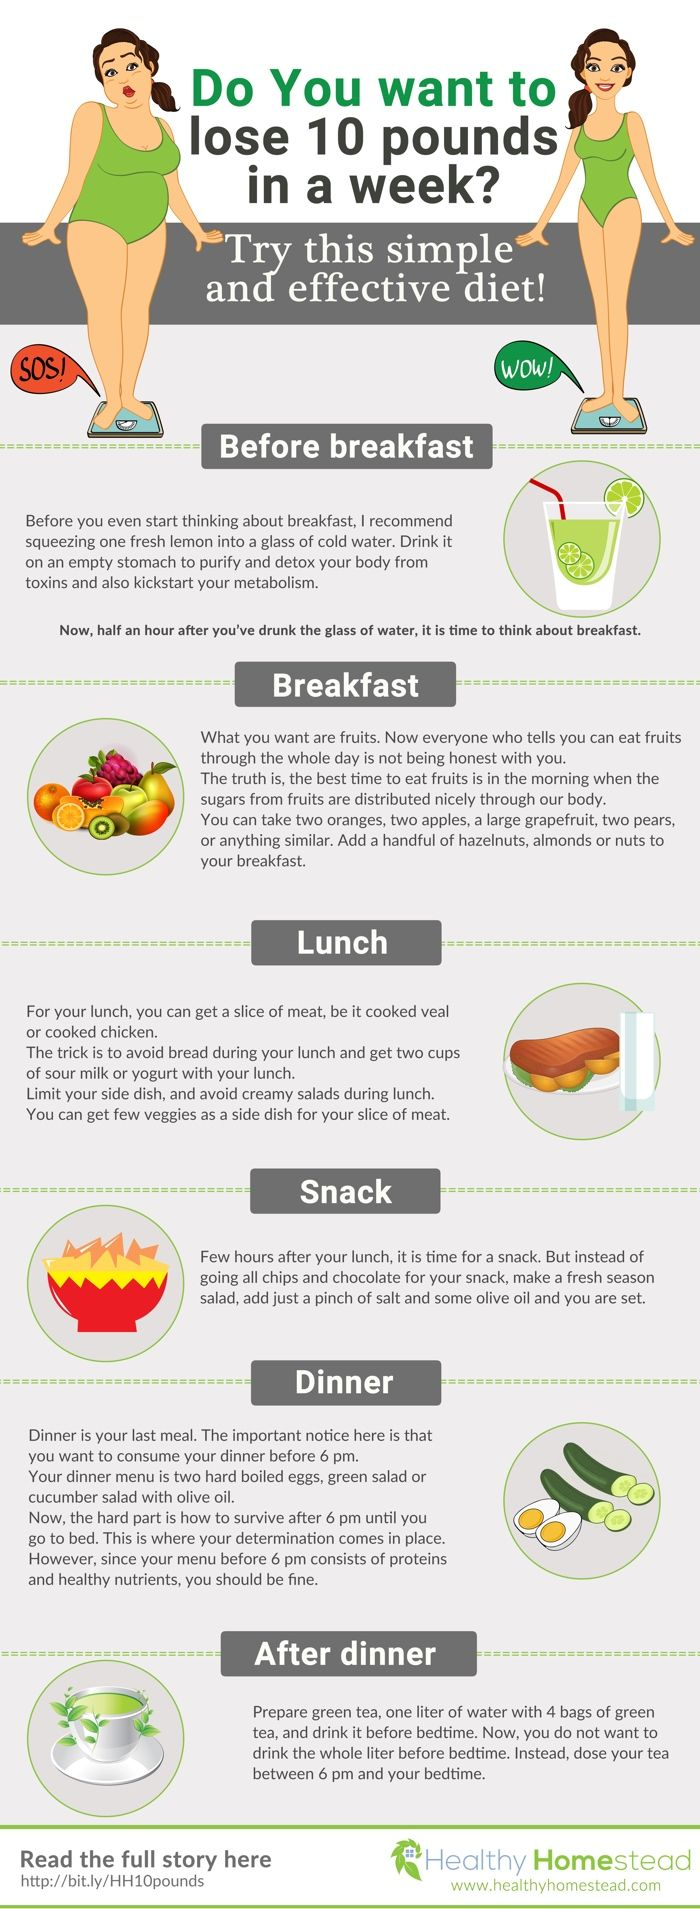 Do You want to lose 10 pounds in a week? Try this simple and effective diet! via @healthyhomestea